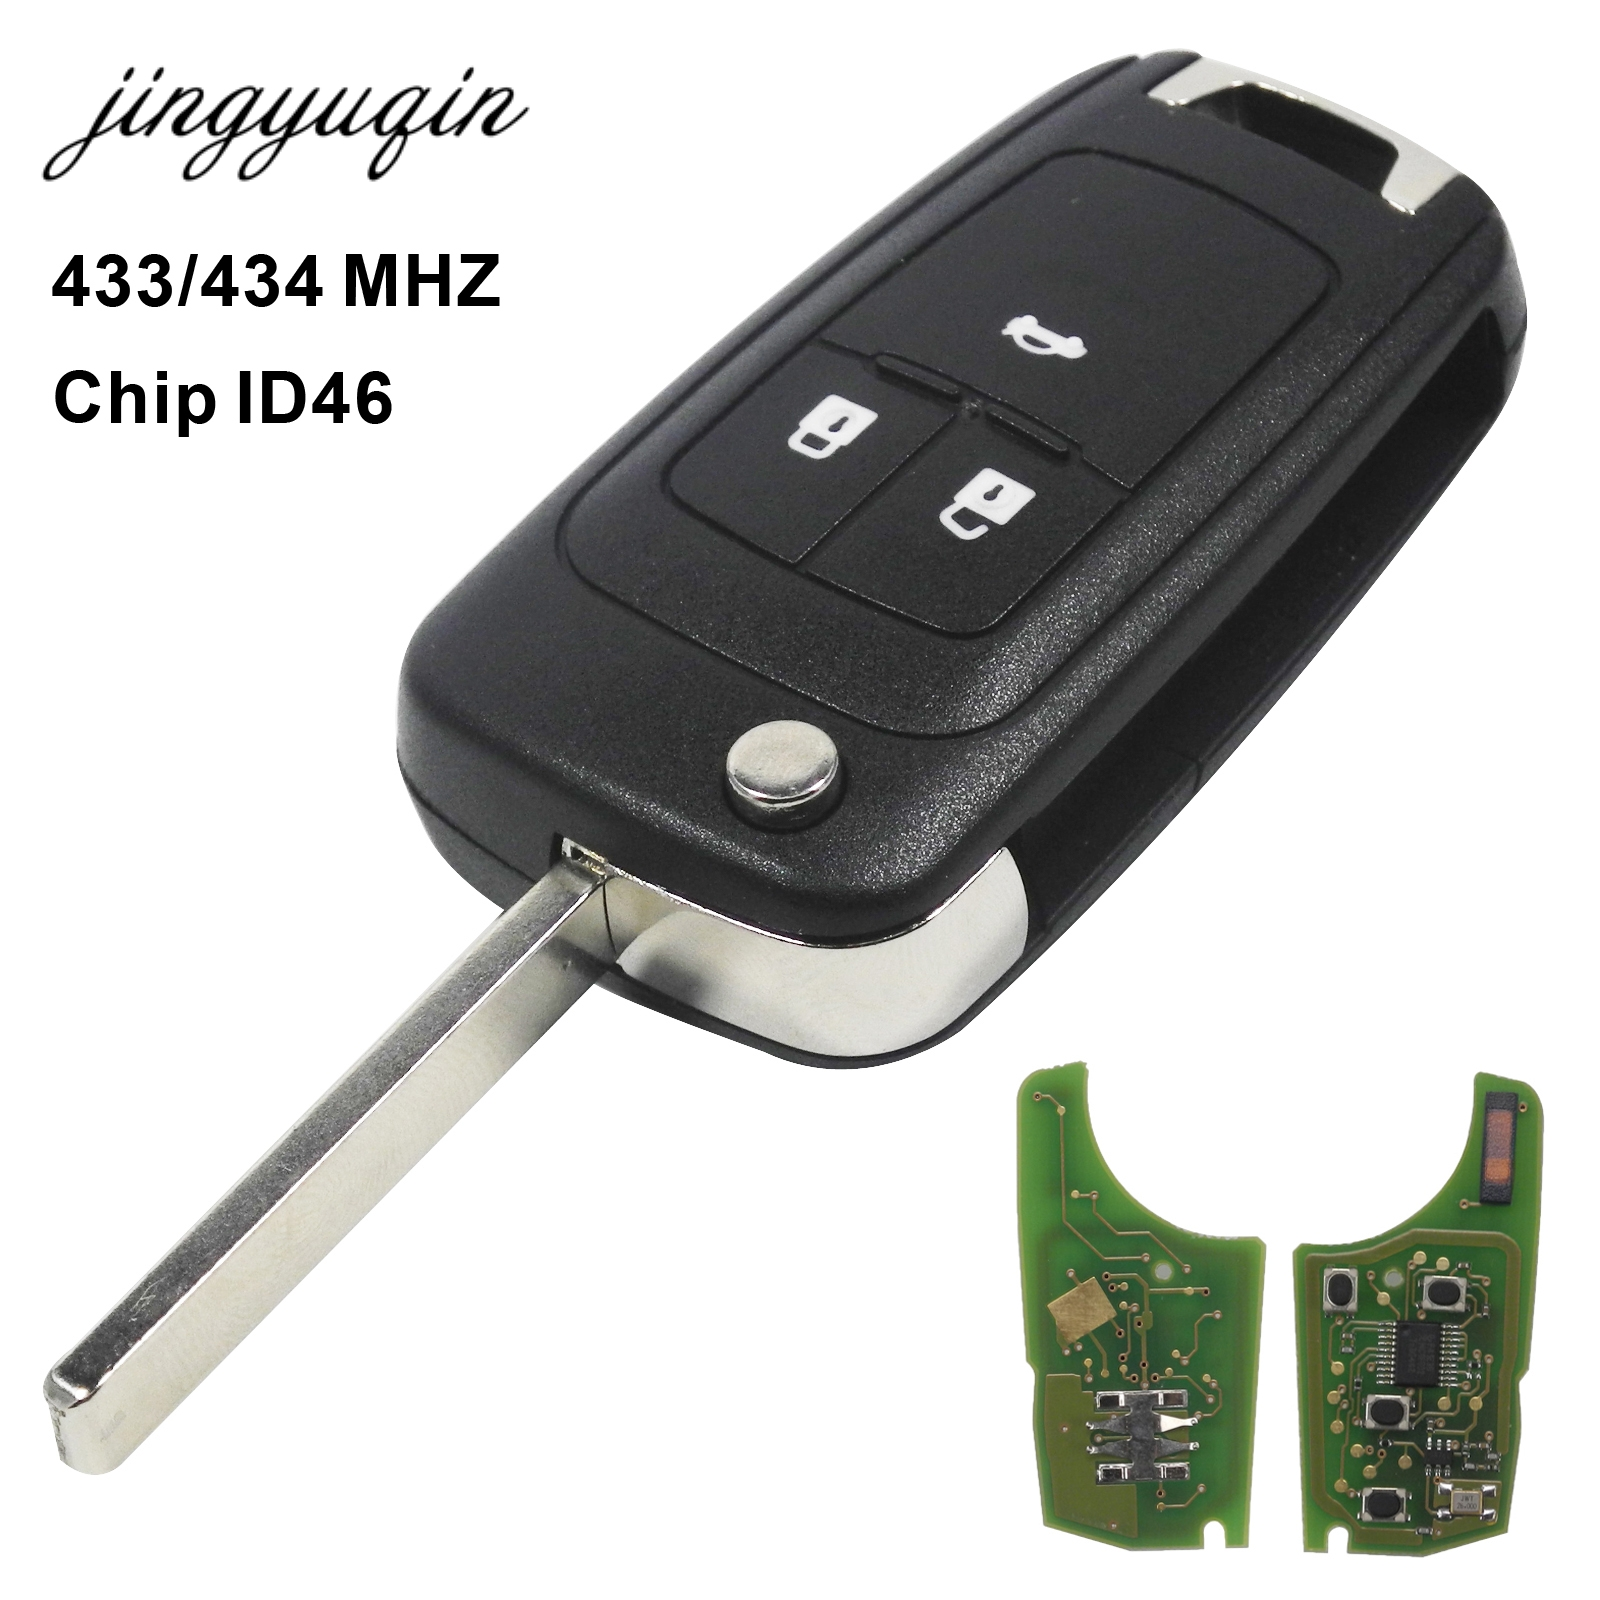 jingyuqin 433MHz ID46 Chip Remote Control Flip Key for Chevrolet Cruze Aveo Orlando 2010-2015 HU100 Blade 3 Button Keyless Fob